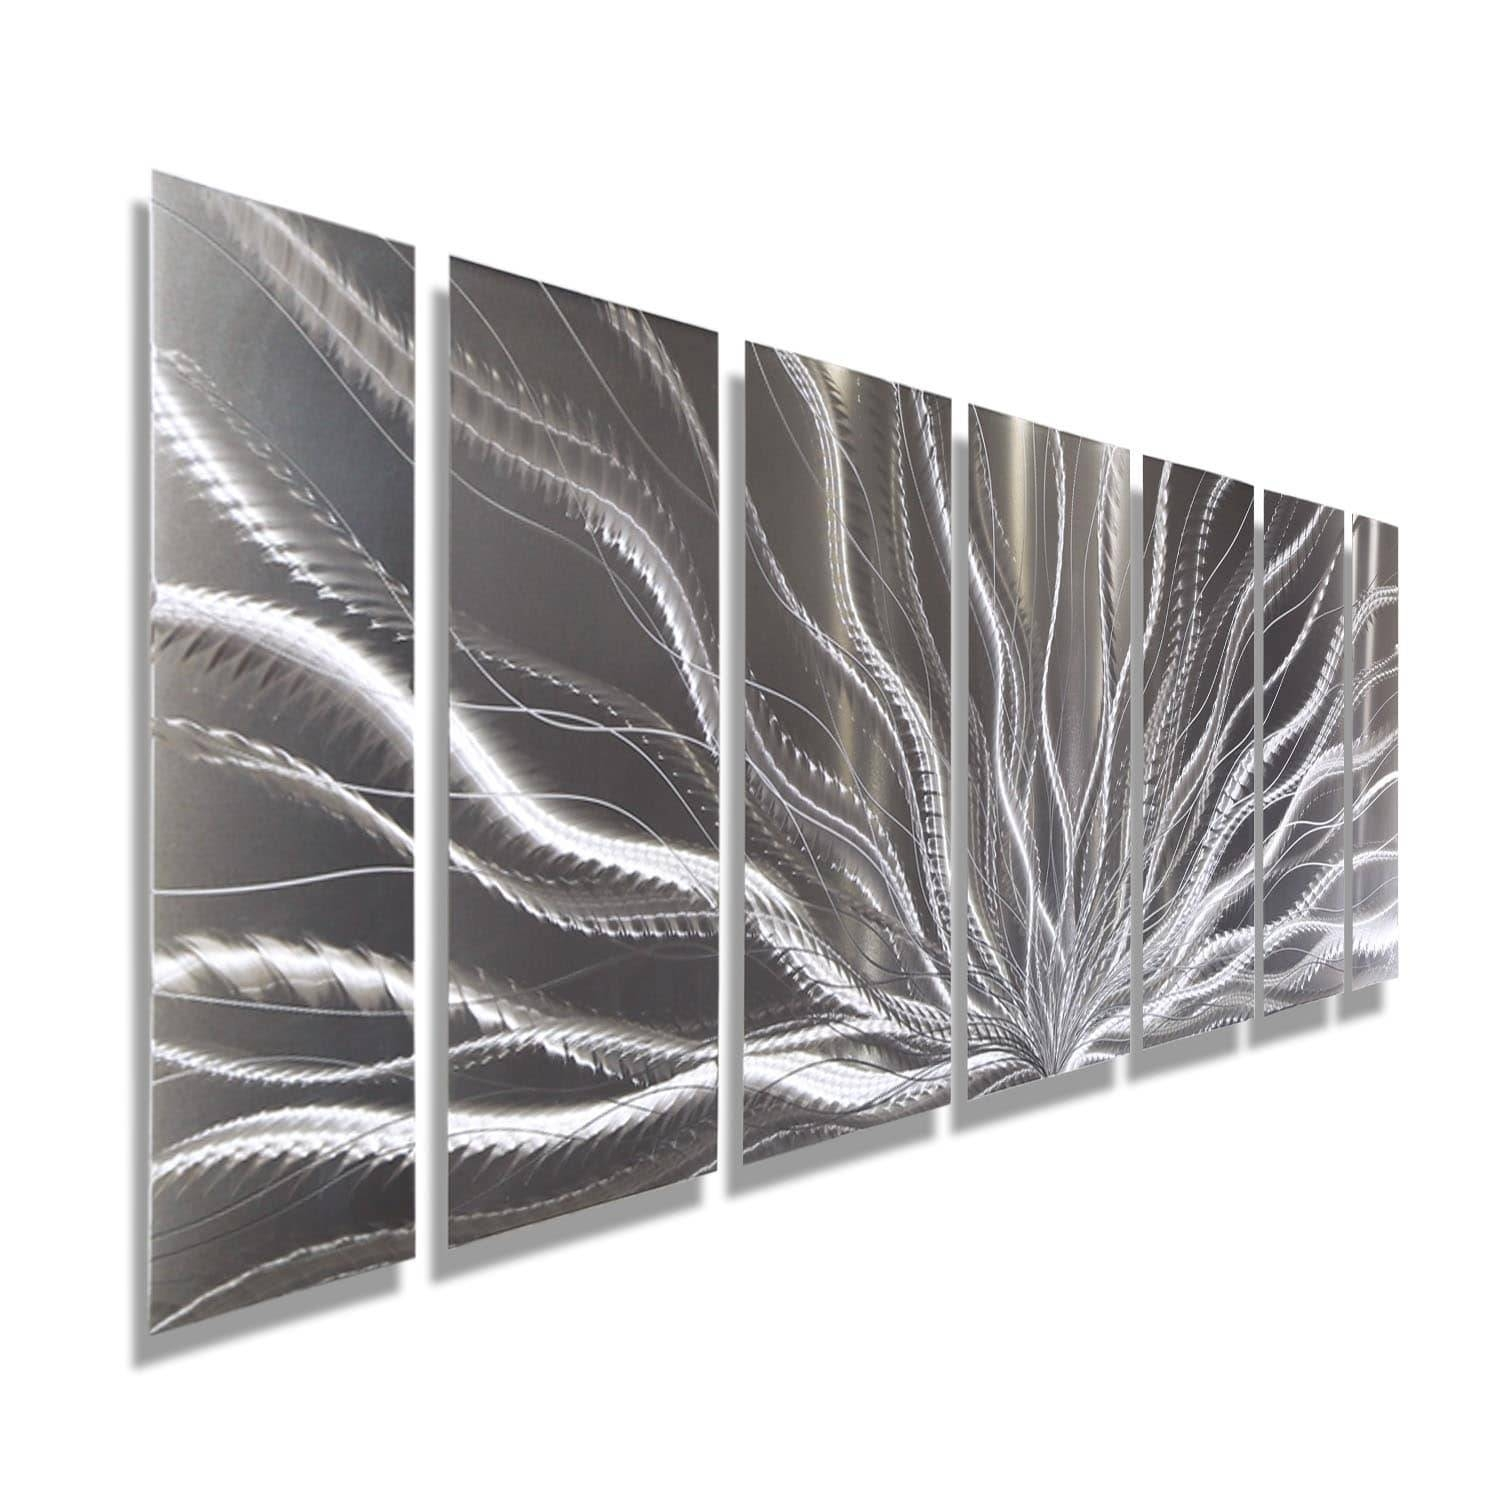 Statements2000 Silver Abstract Etched Metal Wall Art Sculpture For Newest Etched Metal Wall Art (View 10 of 20)